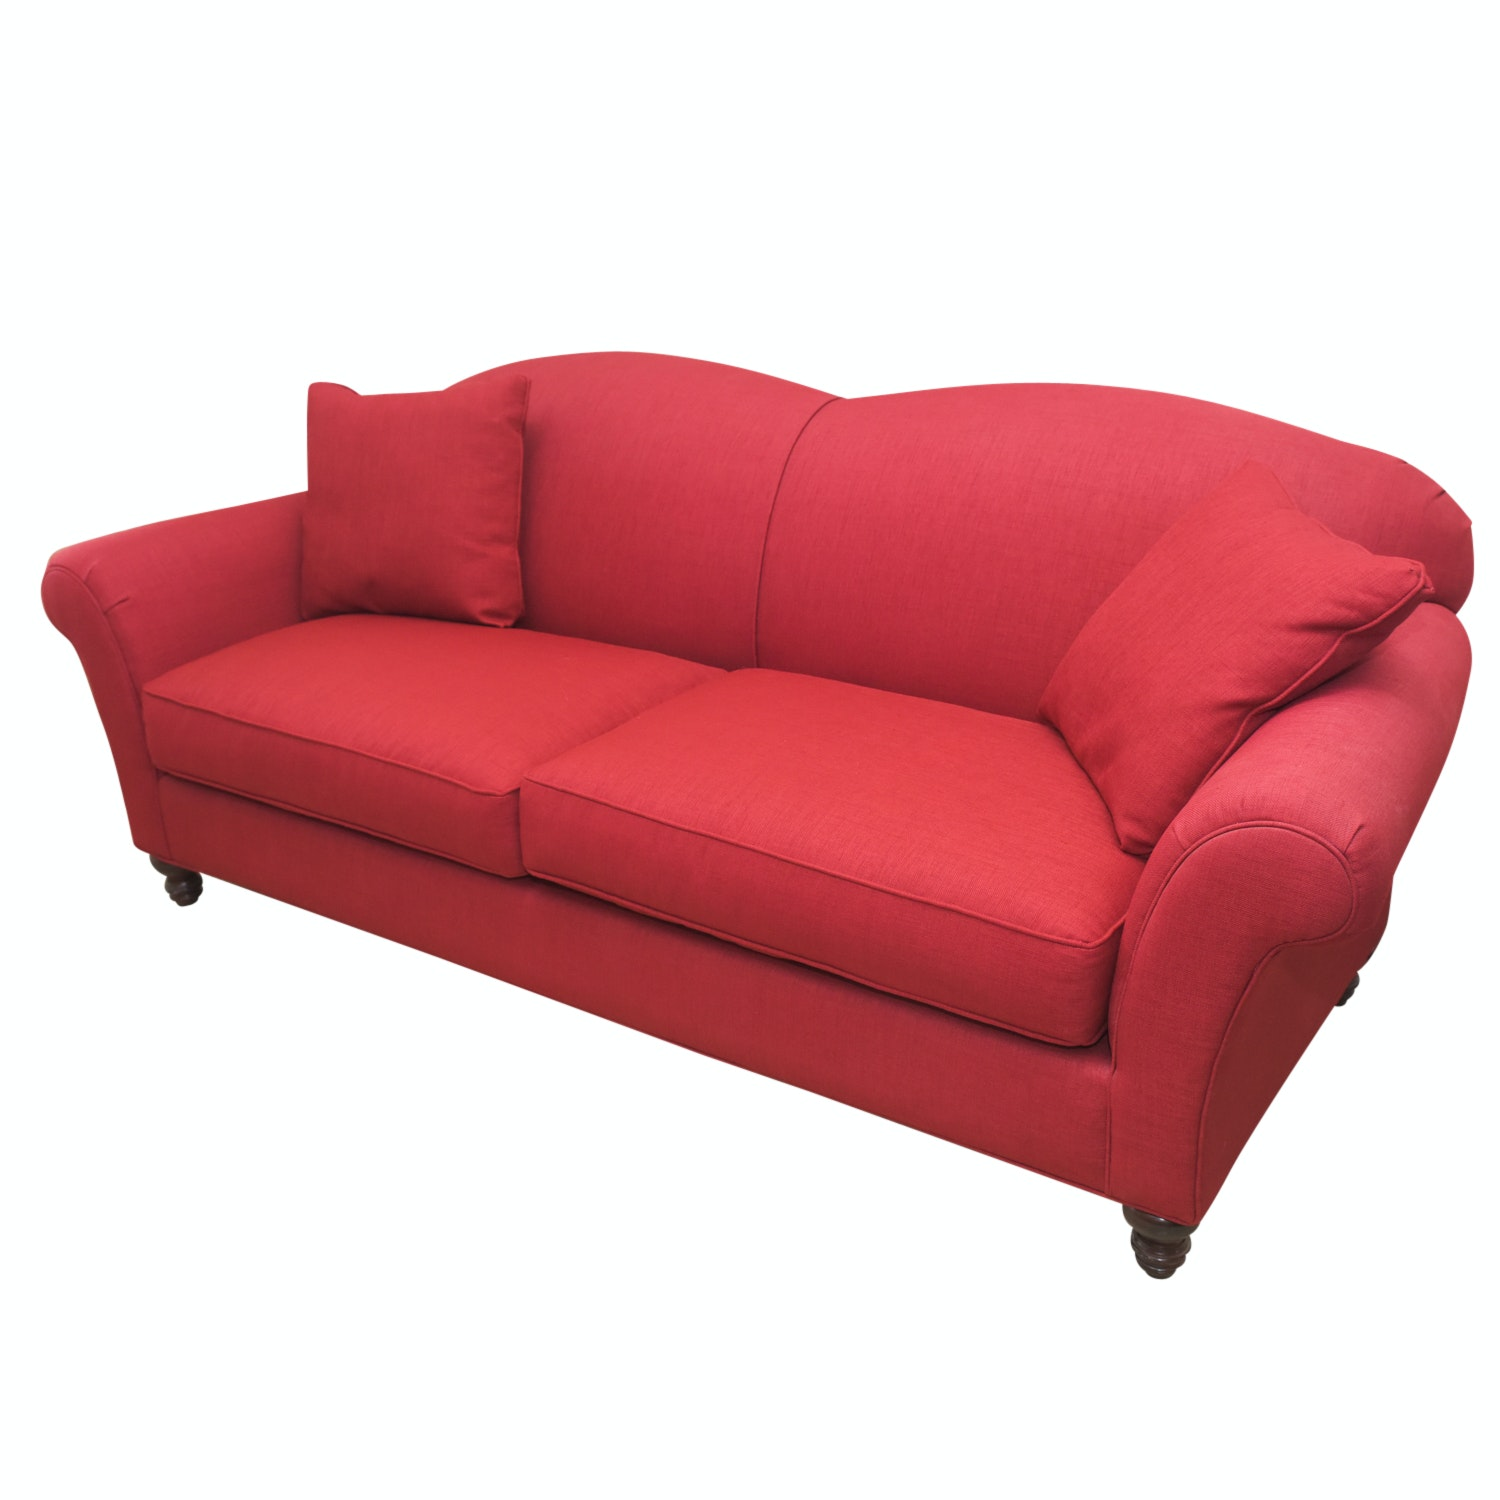 Arhaus Contemporary Red Upholstered Sofa ...